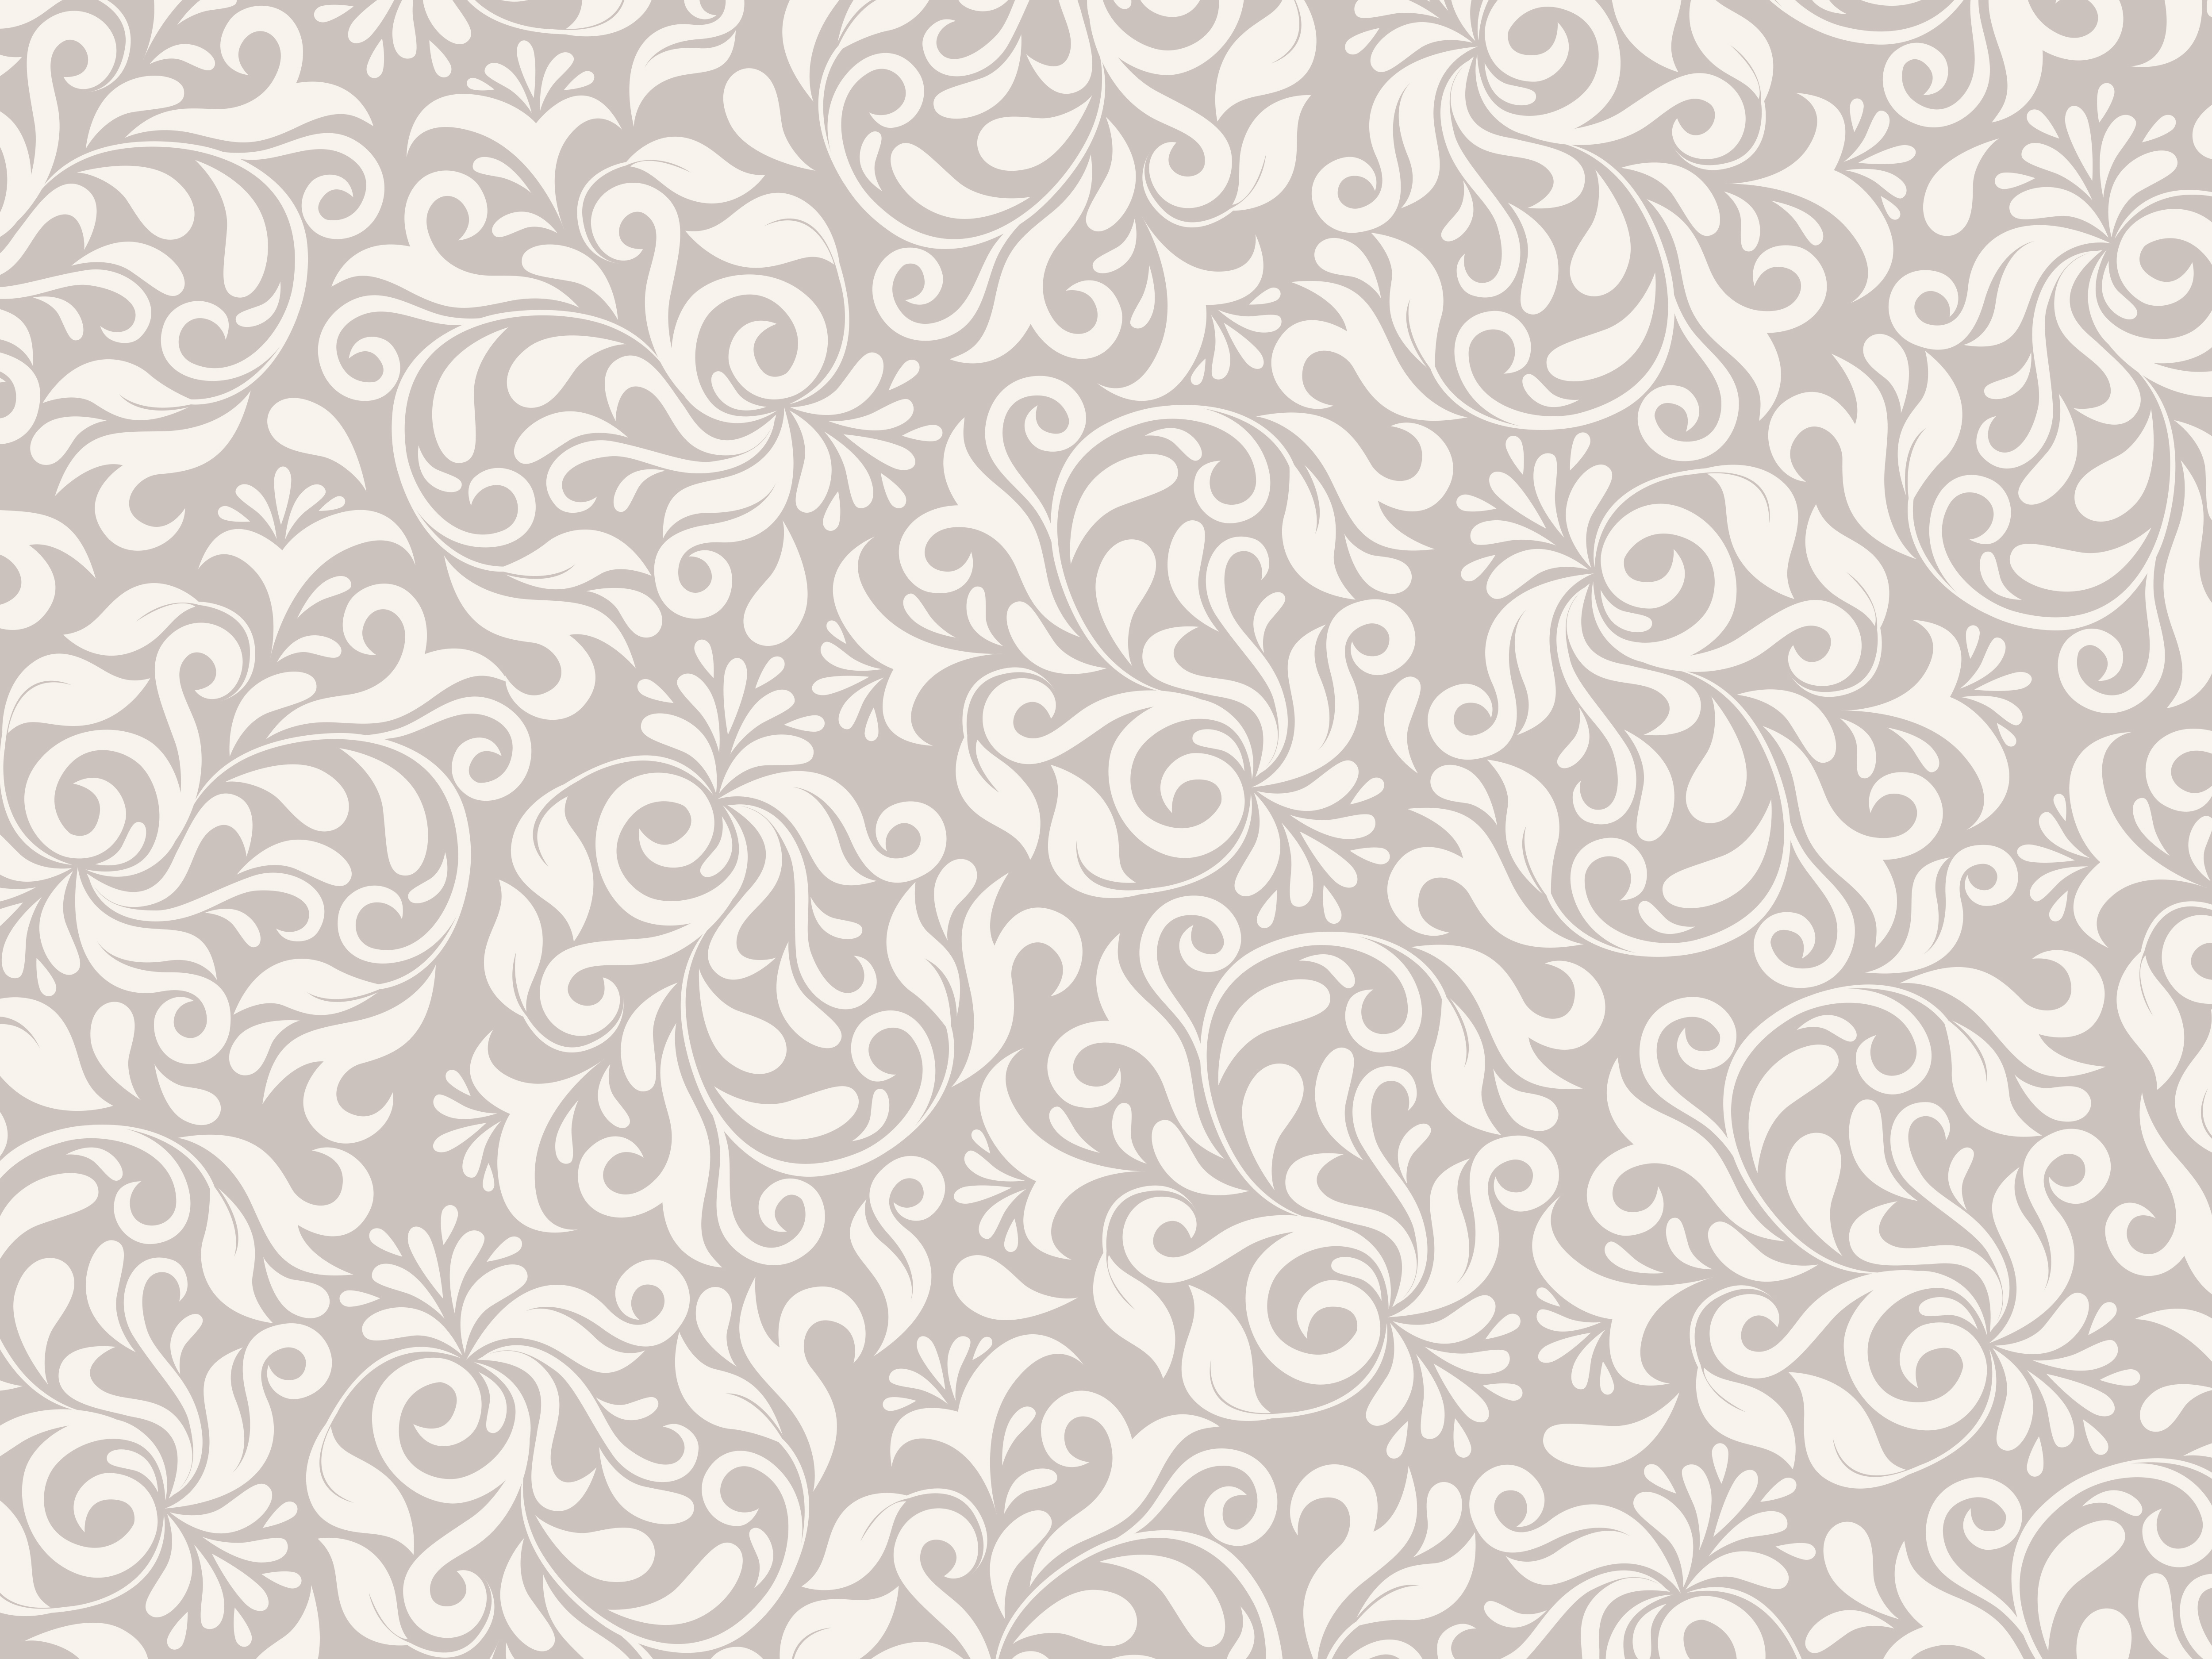 Light Brown Floral Pattern Psdgraphics